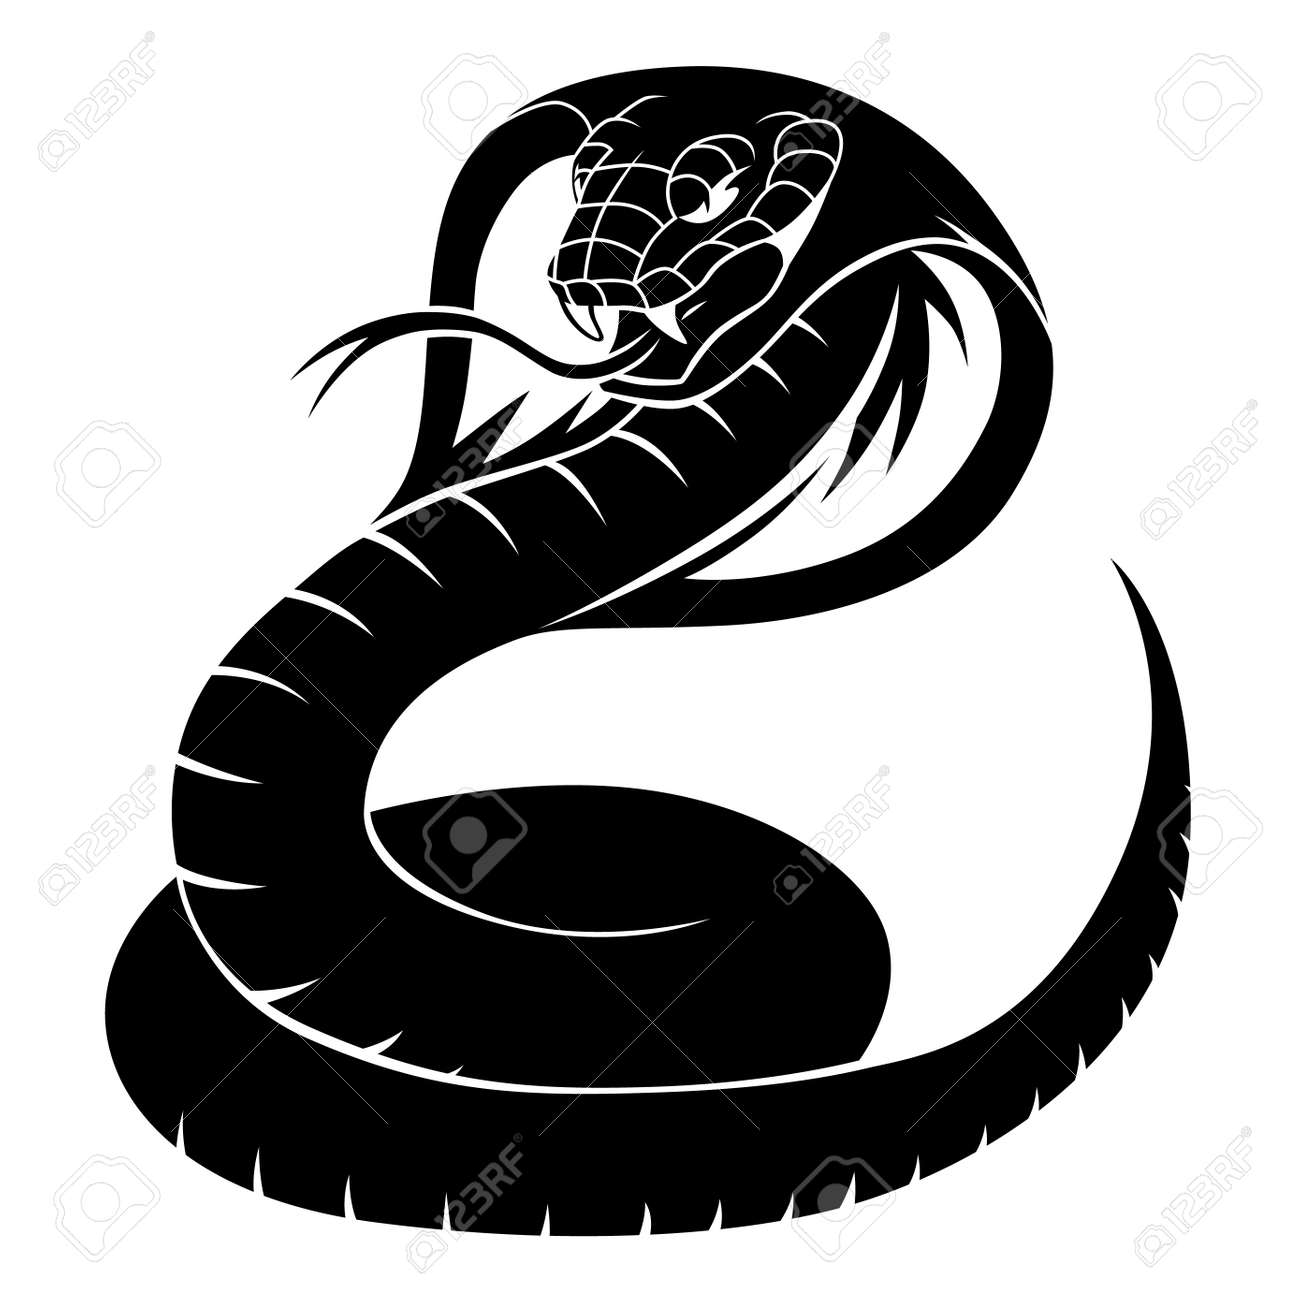 black tattoo cobra royalty free cliparts vectors and stock illustration image 56046431 black tattoo cobra